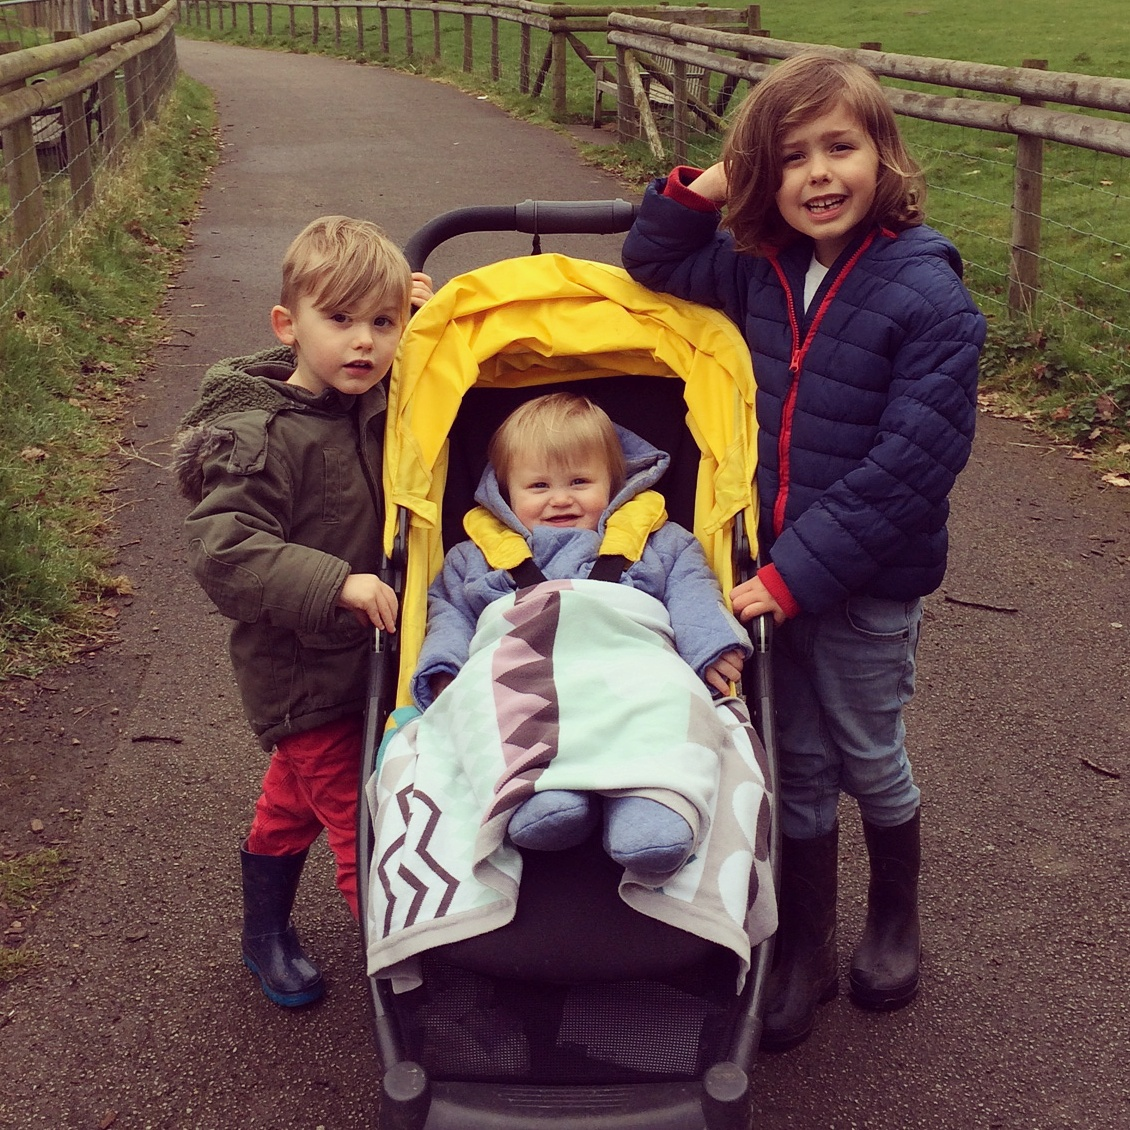 100 Days of Home Ed #LoveHomeEd – Day 46 (They Grow So Quick)